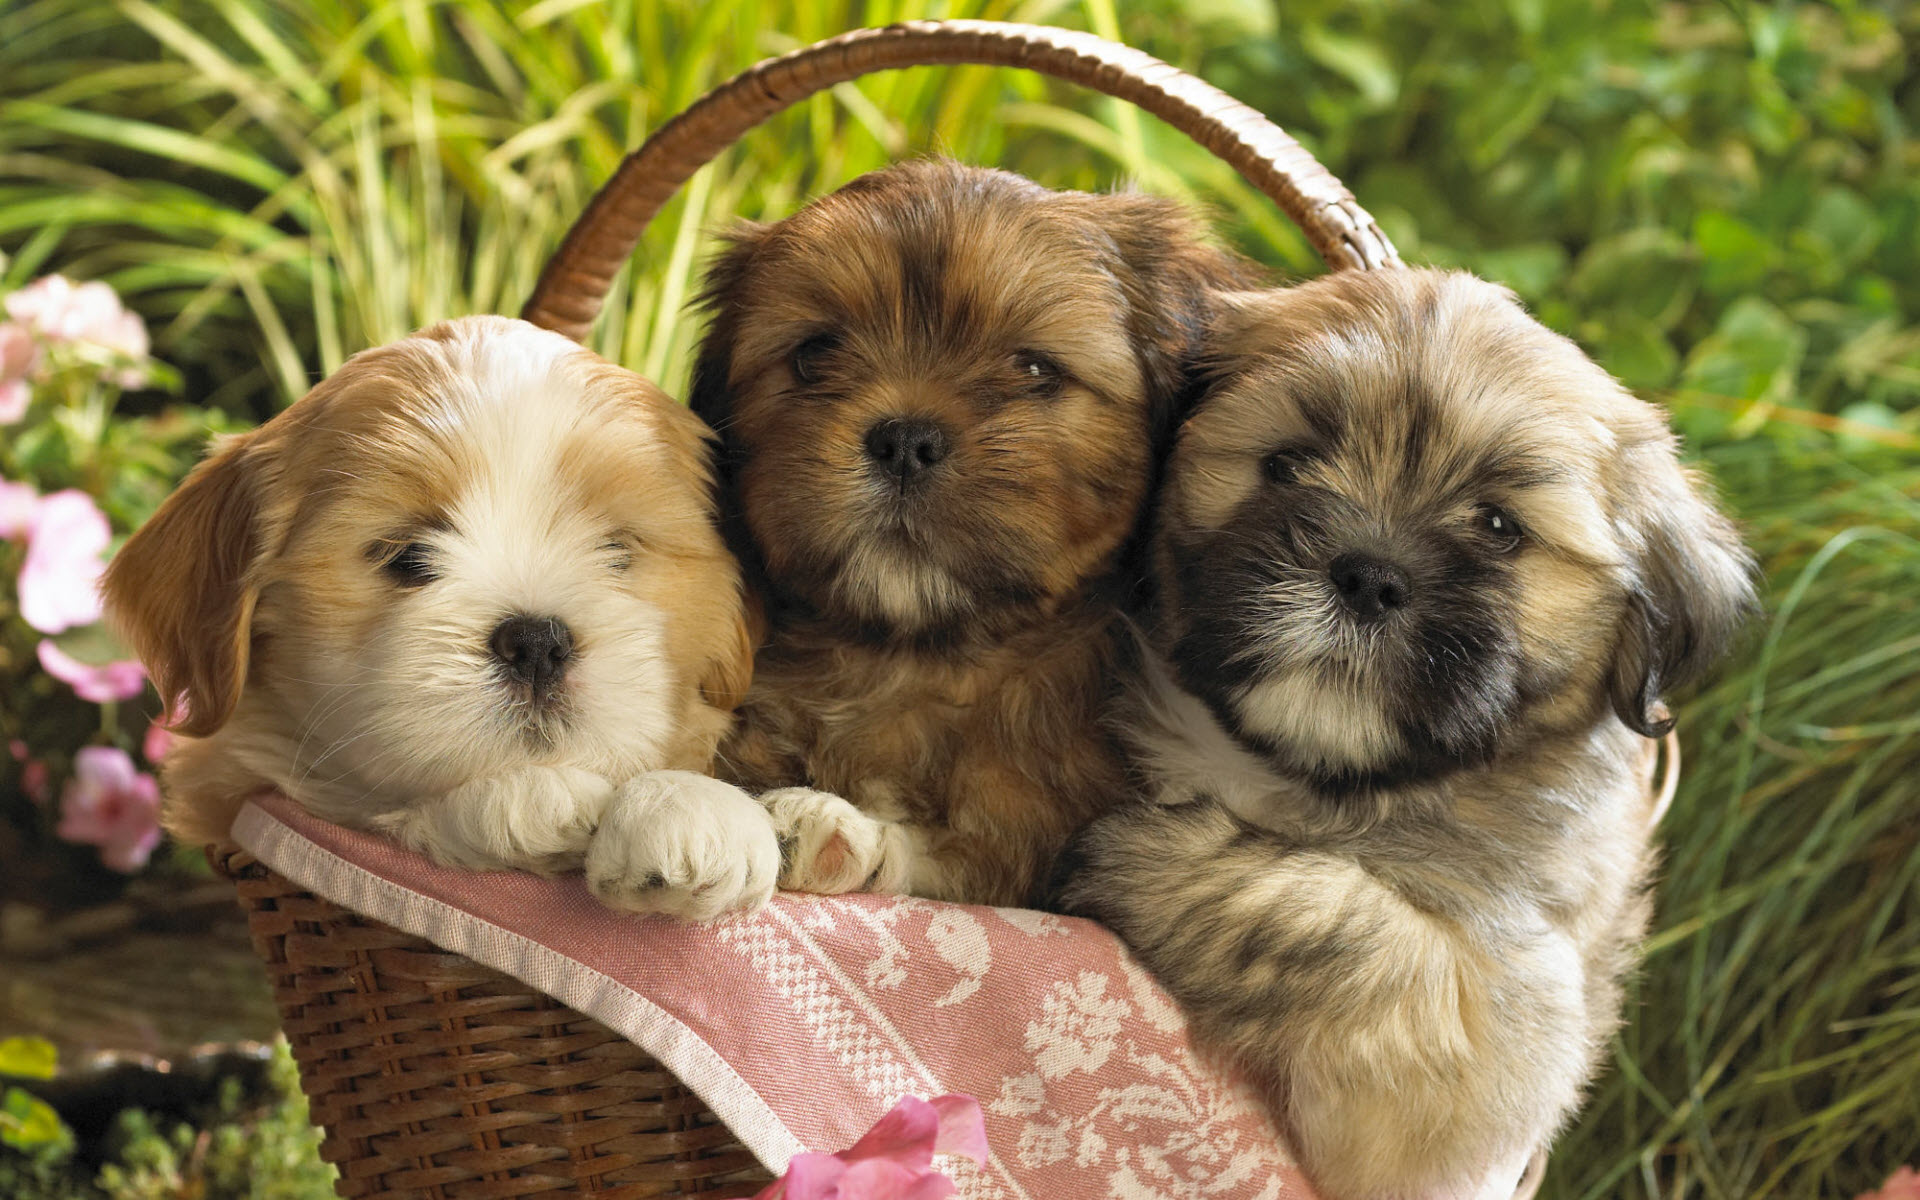 Cute Puppies 2 Wallpapers HD Wallpapers 1920x1200